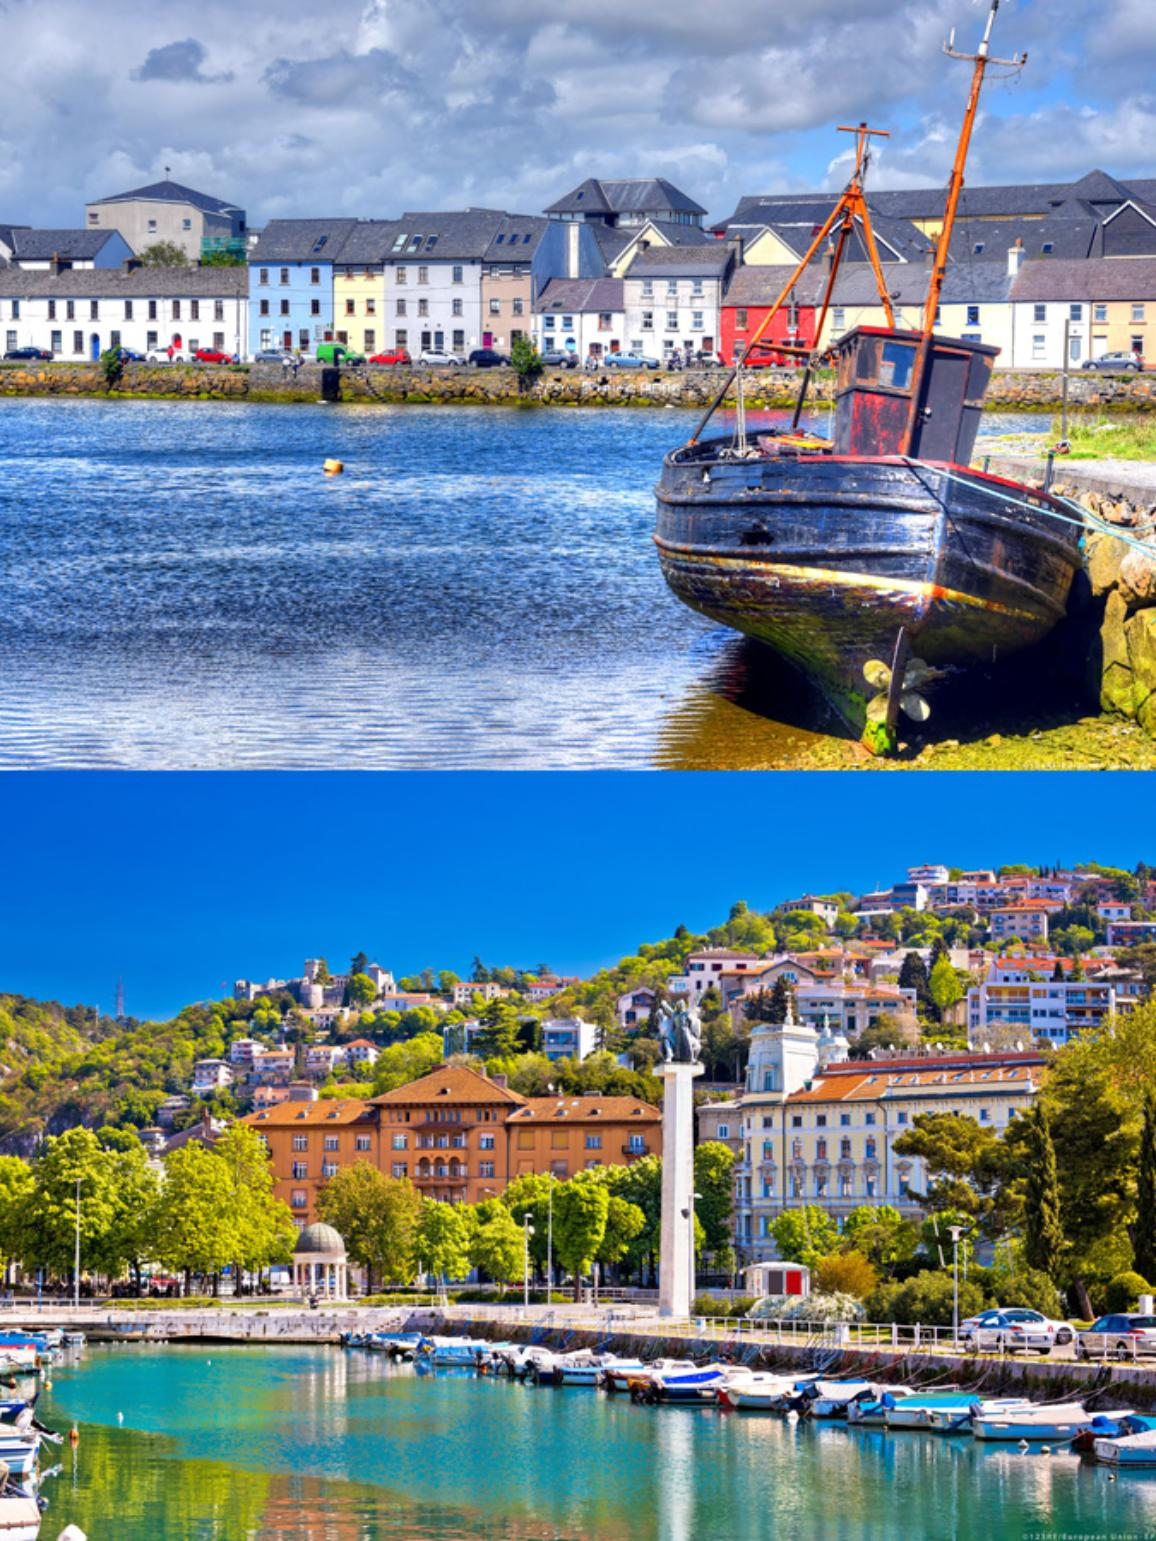 This year European Capitals of Culture are Galway in Ireland and Rijeka in Croatia.